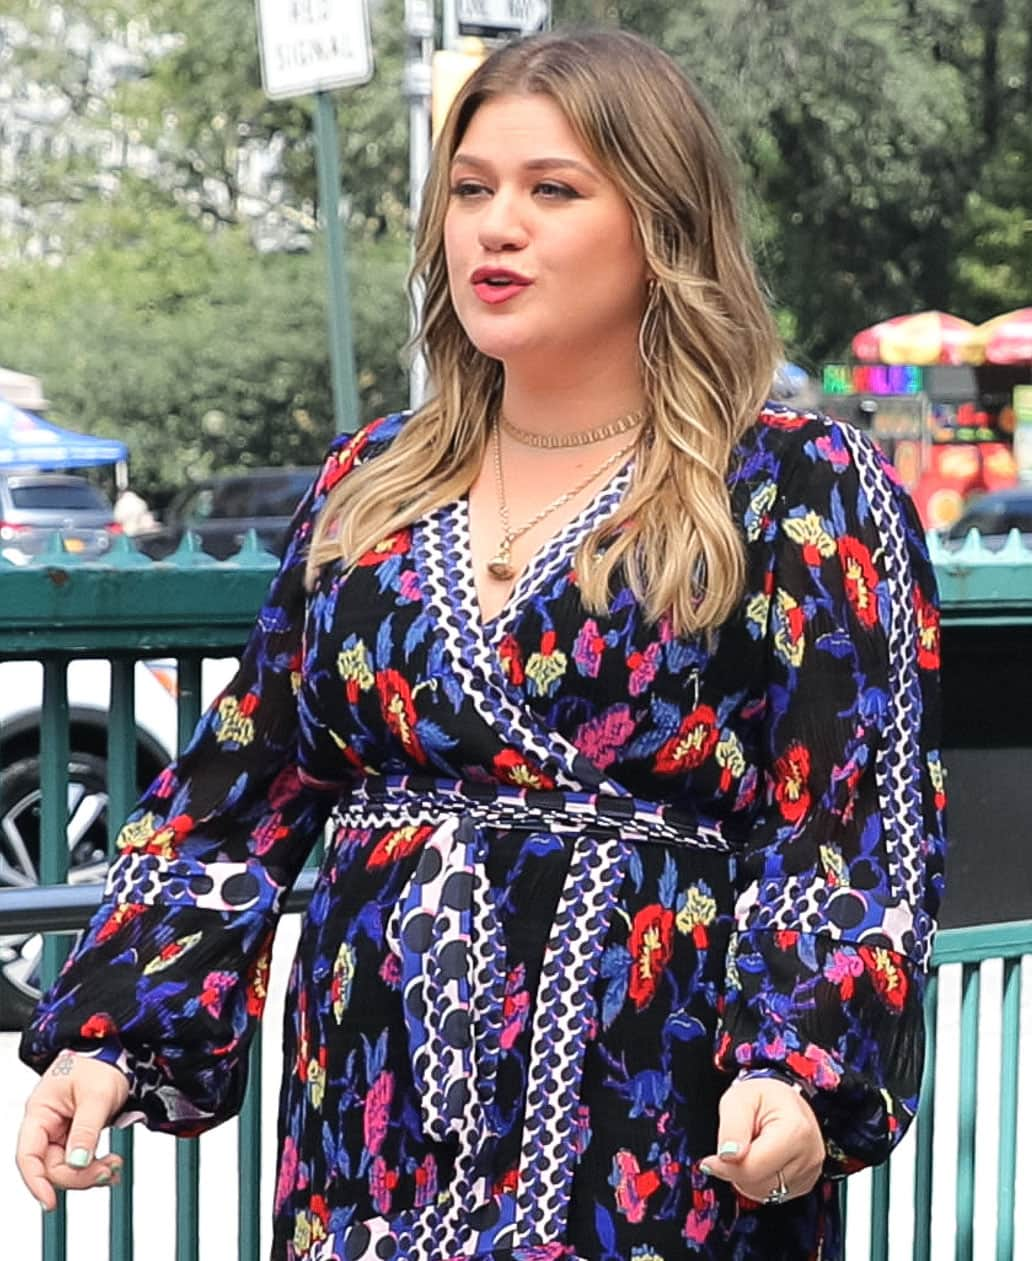 Kelly Clarkson styles her hair in '70s wavy feathered layers and wears bright red lip color